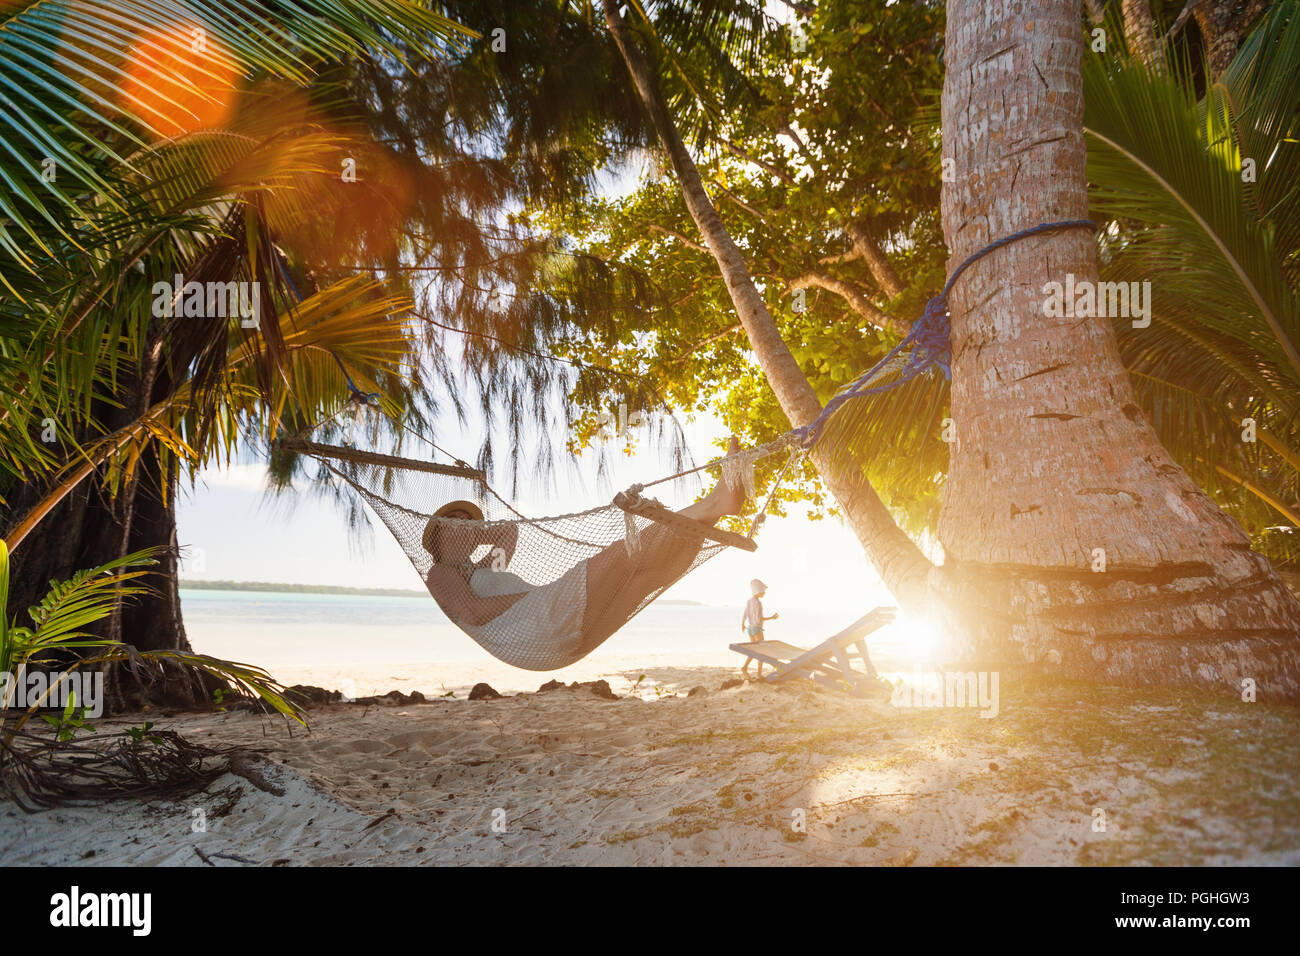 Young beautiful woman relaxing in hammock at tropical beach during sunset - Stock Image